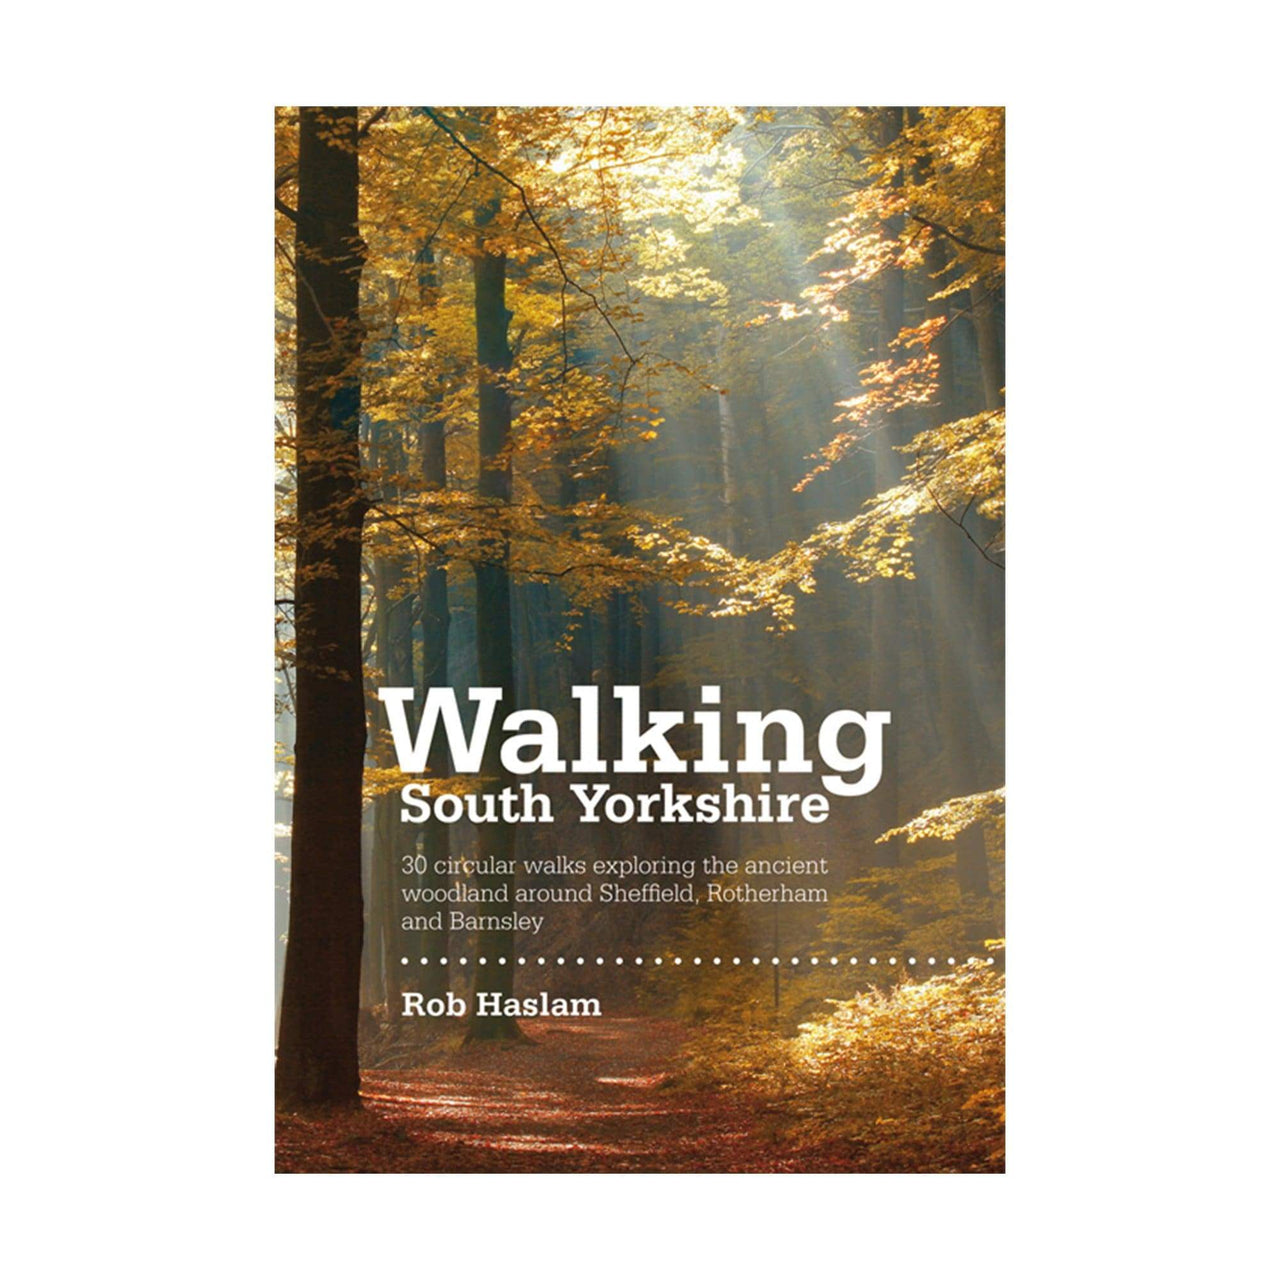 Walking South Yorkshire